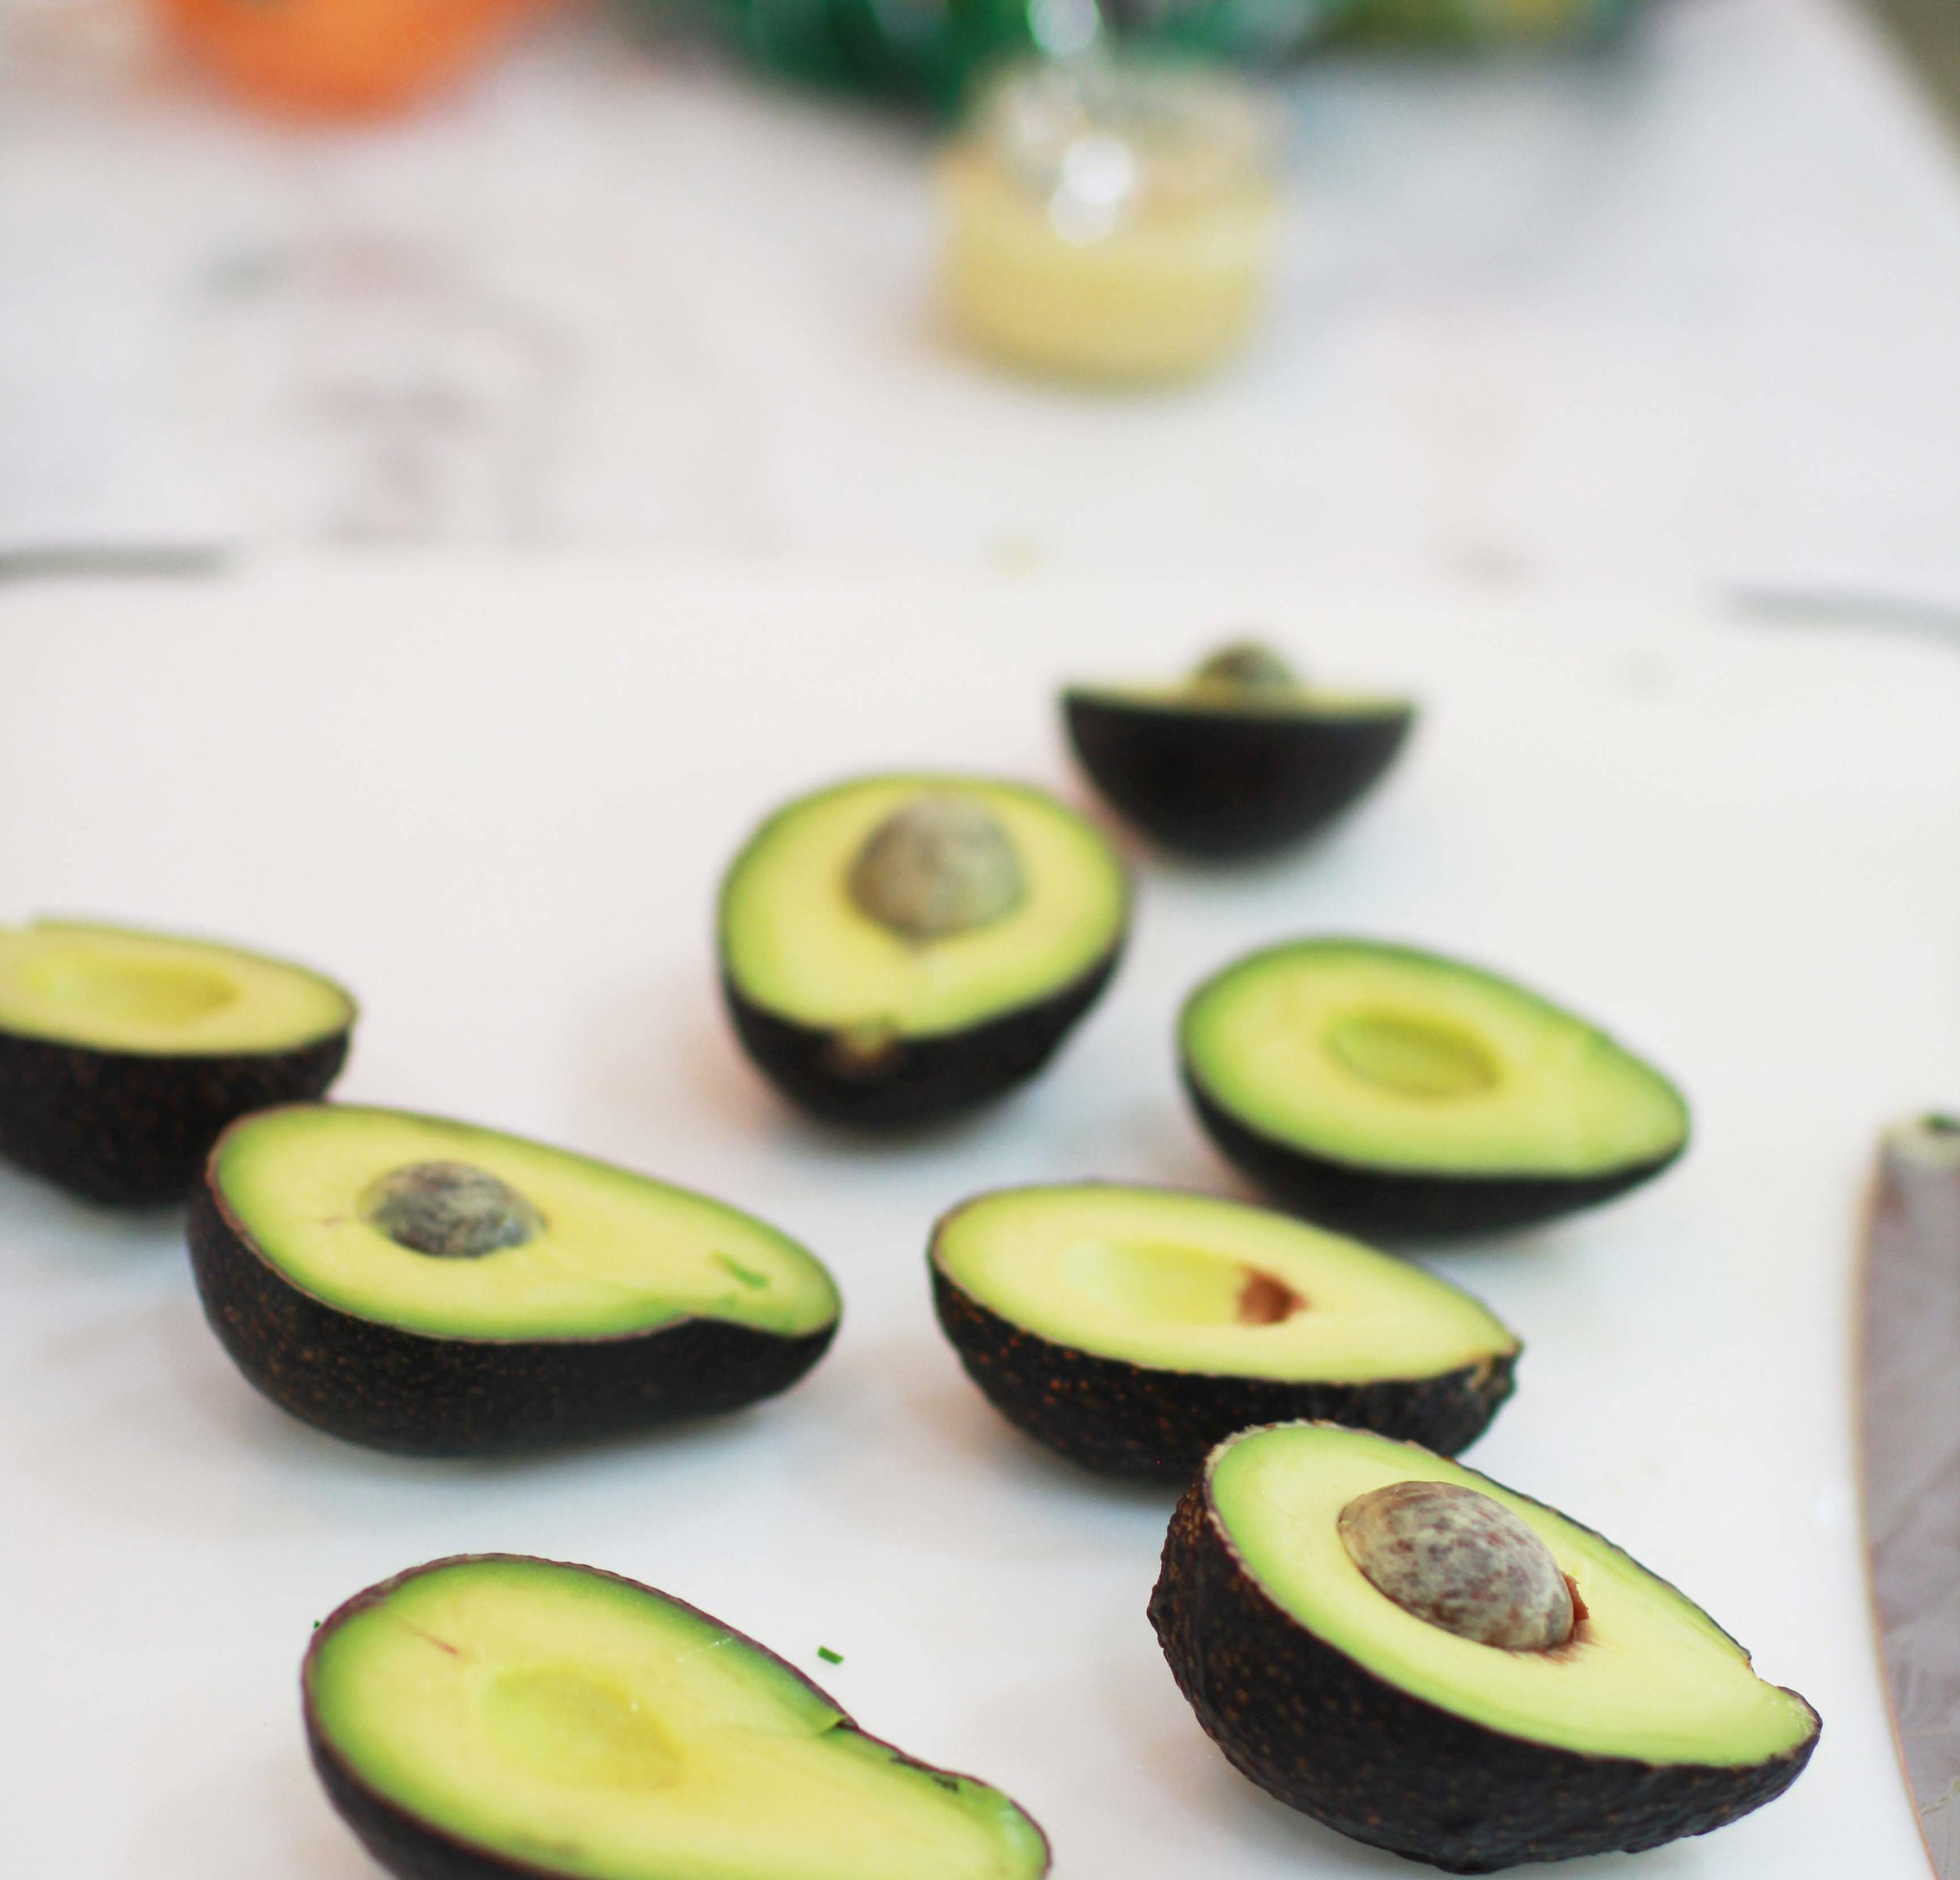 Thatveganwife-blog-healthy-word-advertisements-food-avocados.jpg